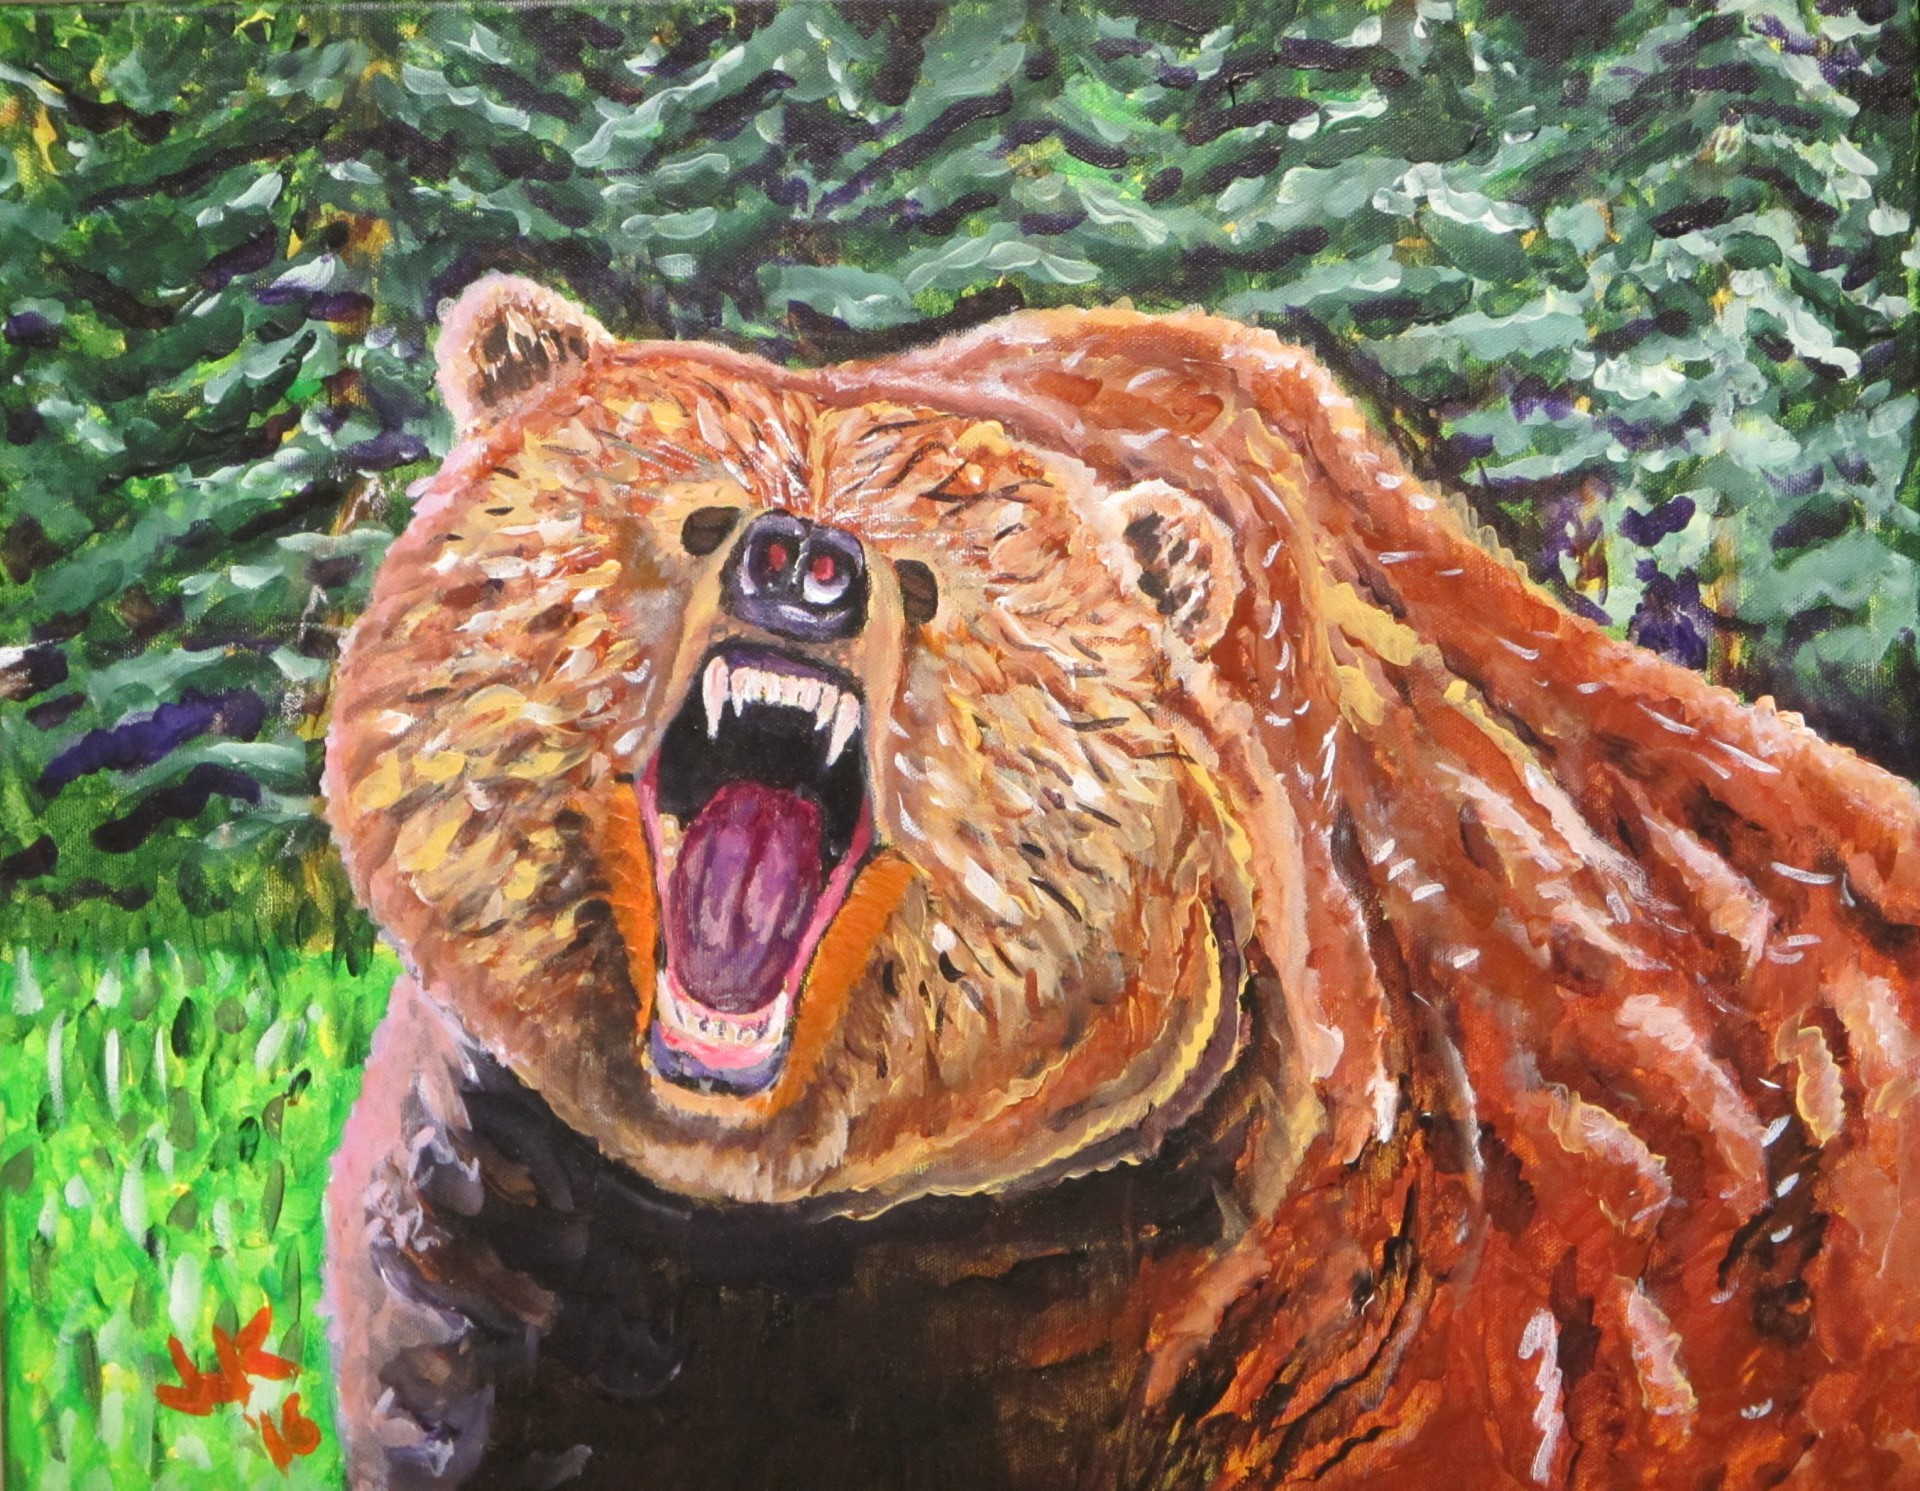 An angry grizzly bear.